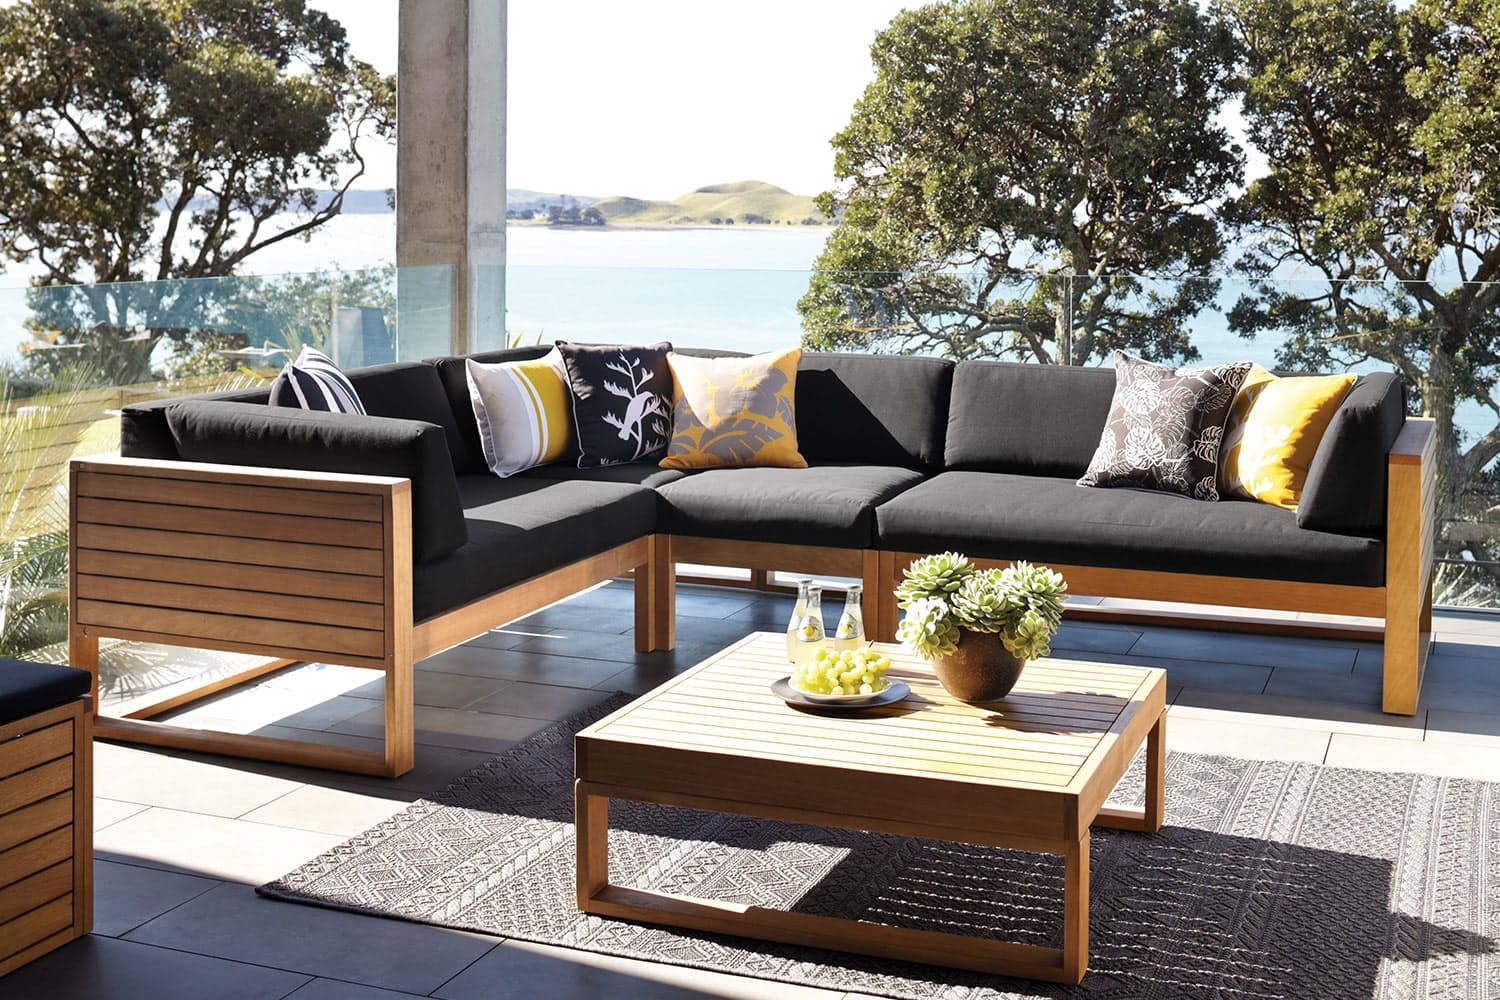 Ventura corner outdoor lounge suite harvey norman new zealand